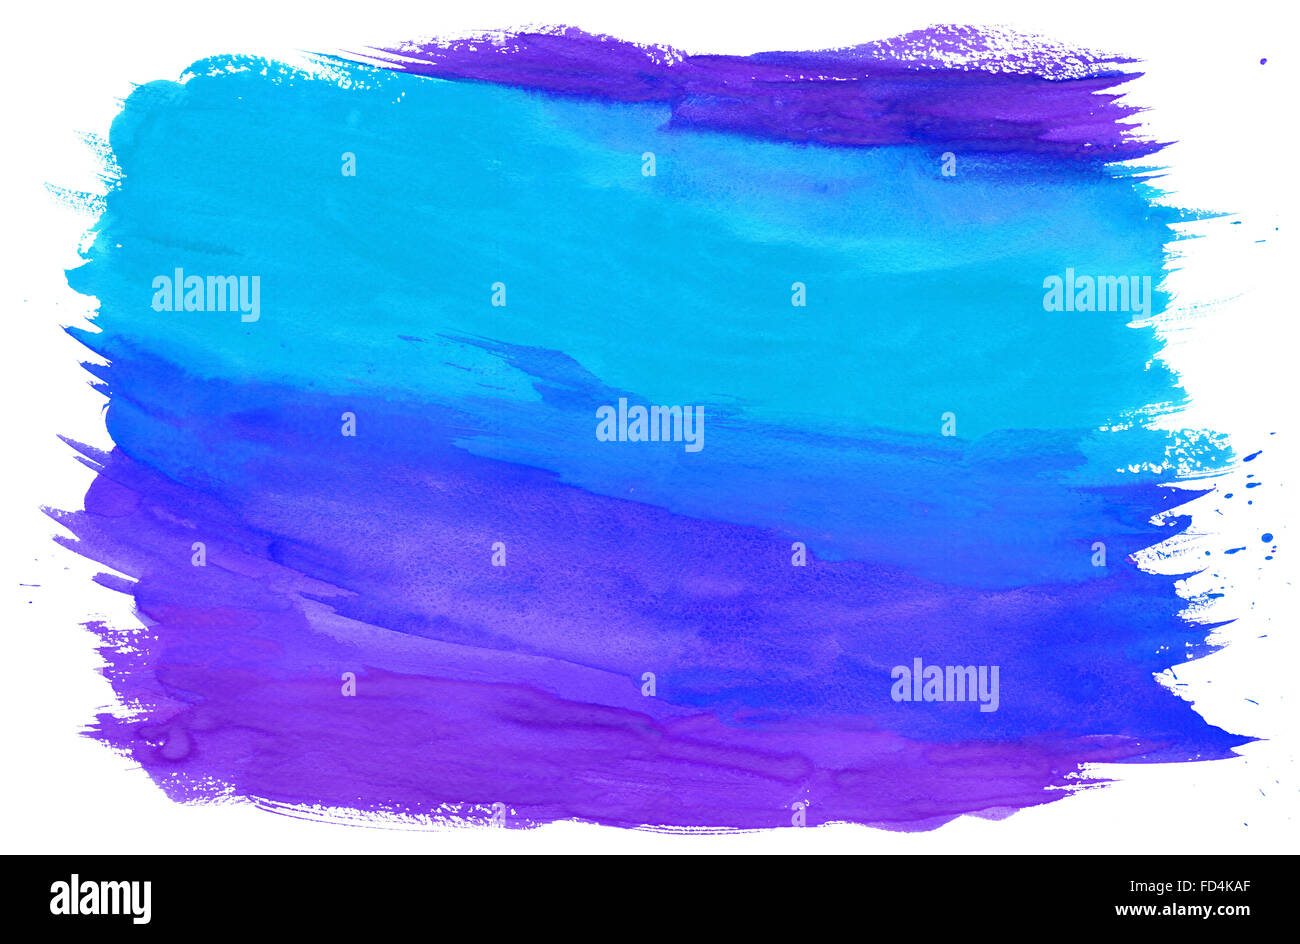 Gouache Painting Textured Background Blue and Purple - Stock Image